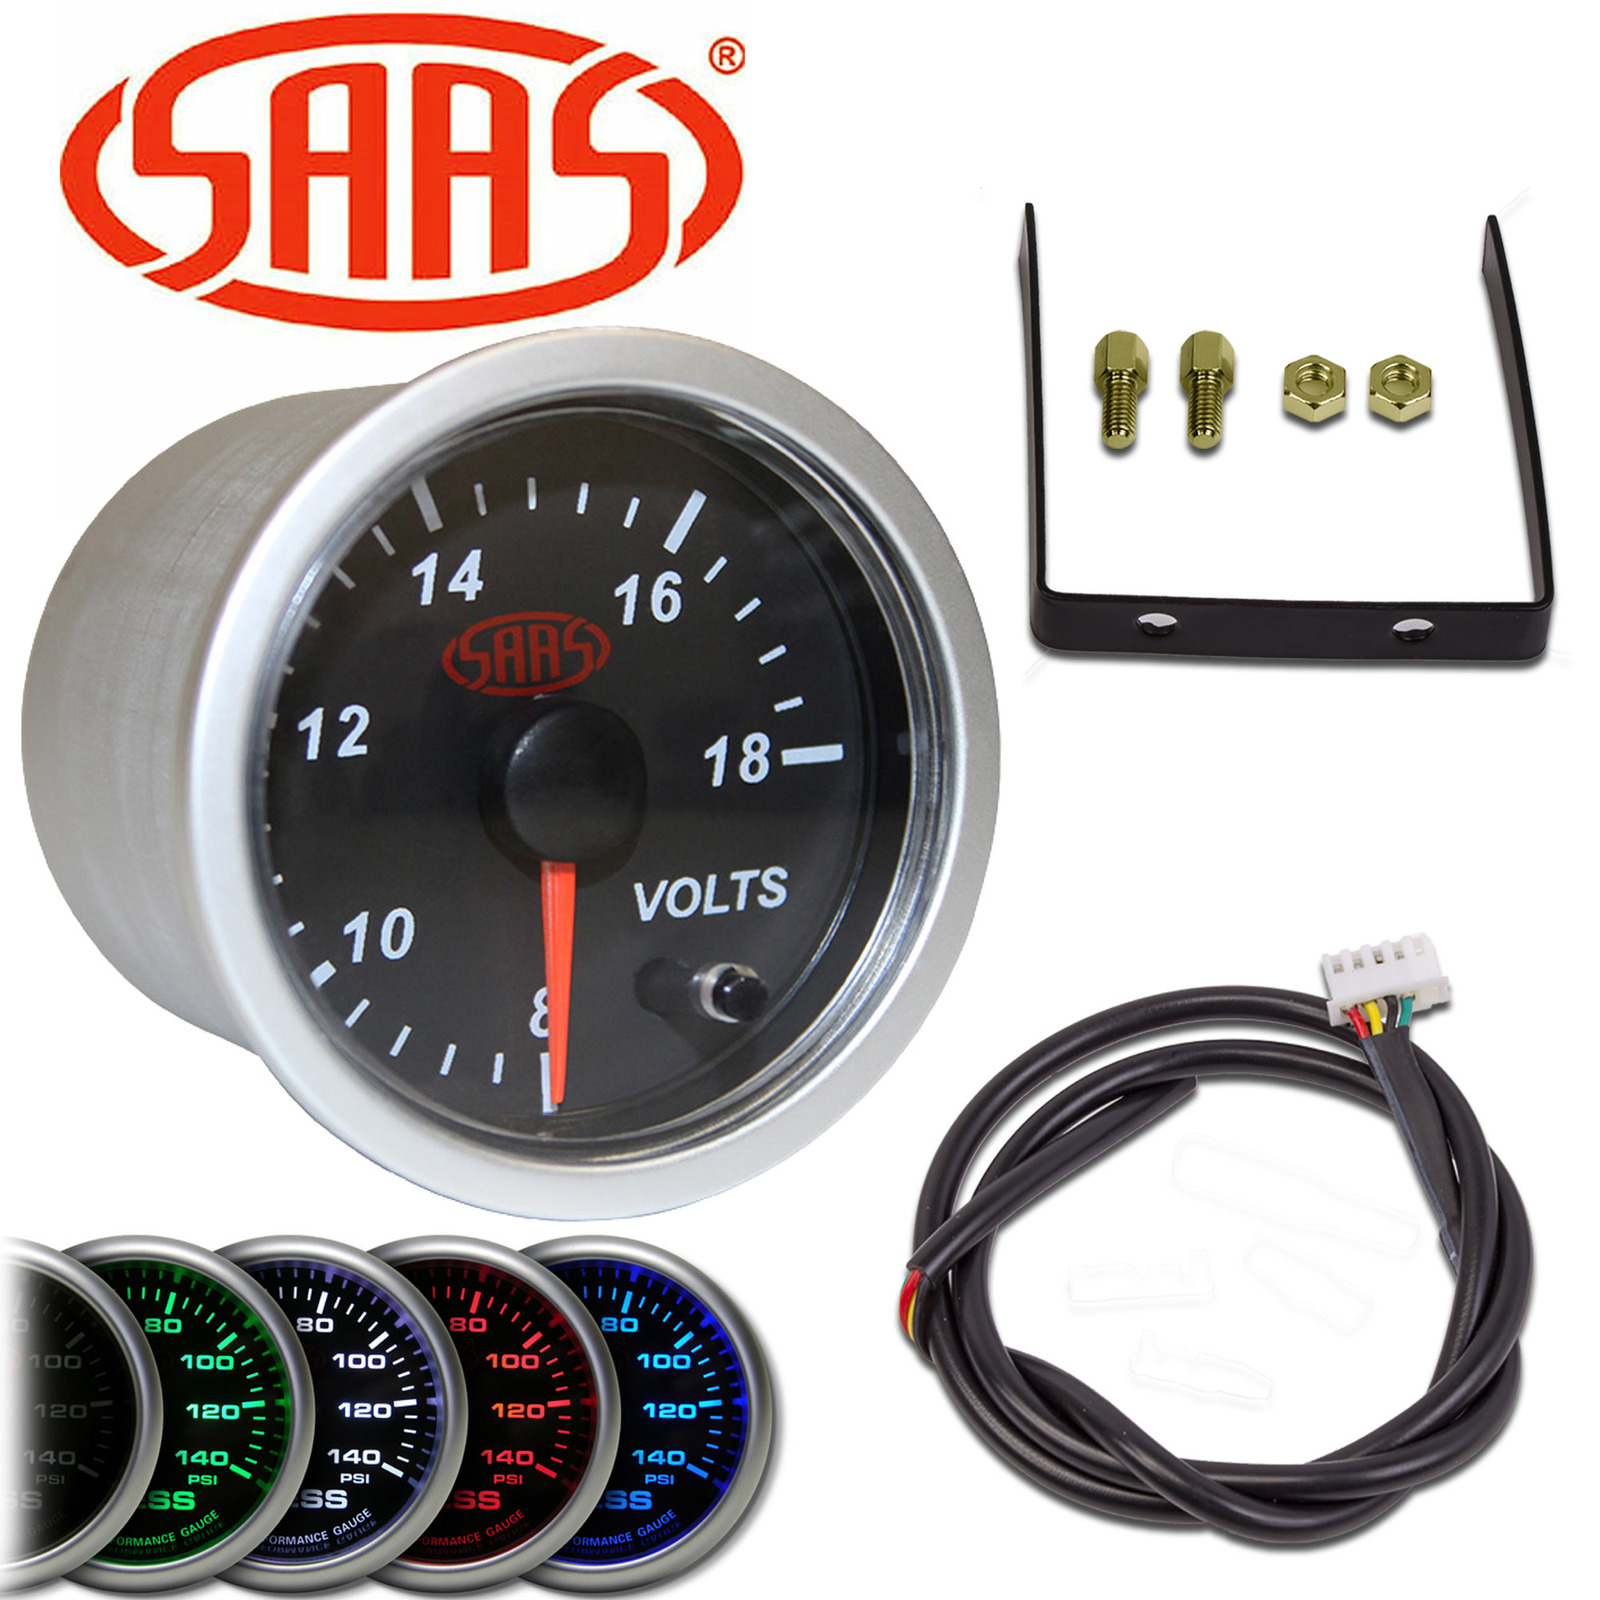 hight resolution of saas 52mm battery system voltmeter volt meter gauge heres the connection diagram for their 52mm gauges from the